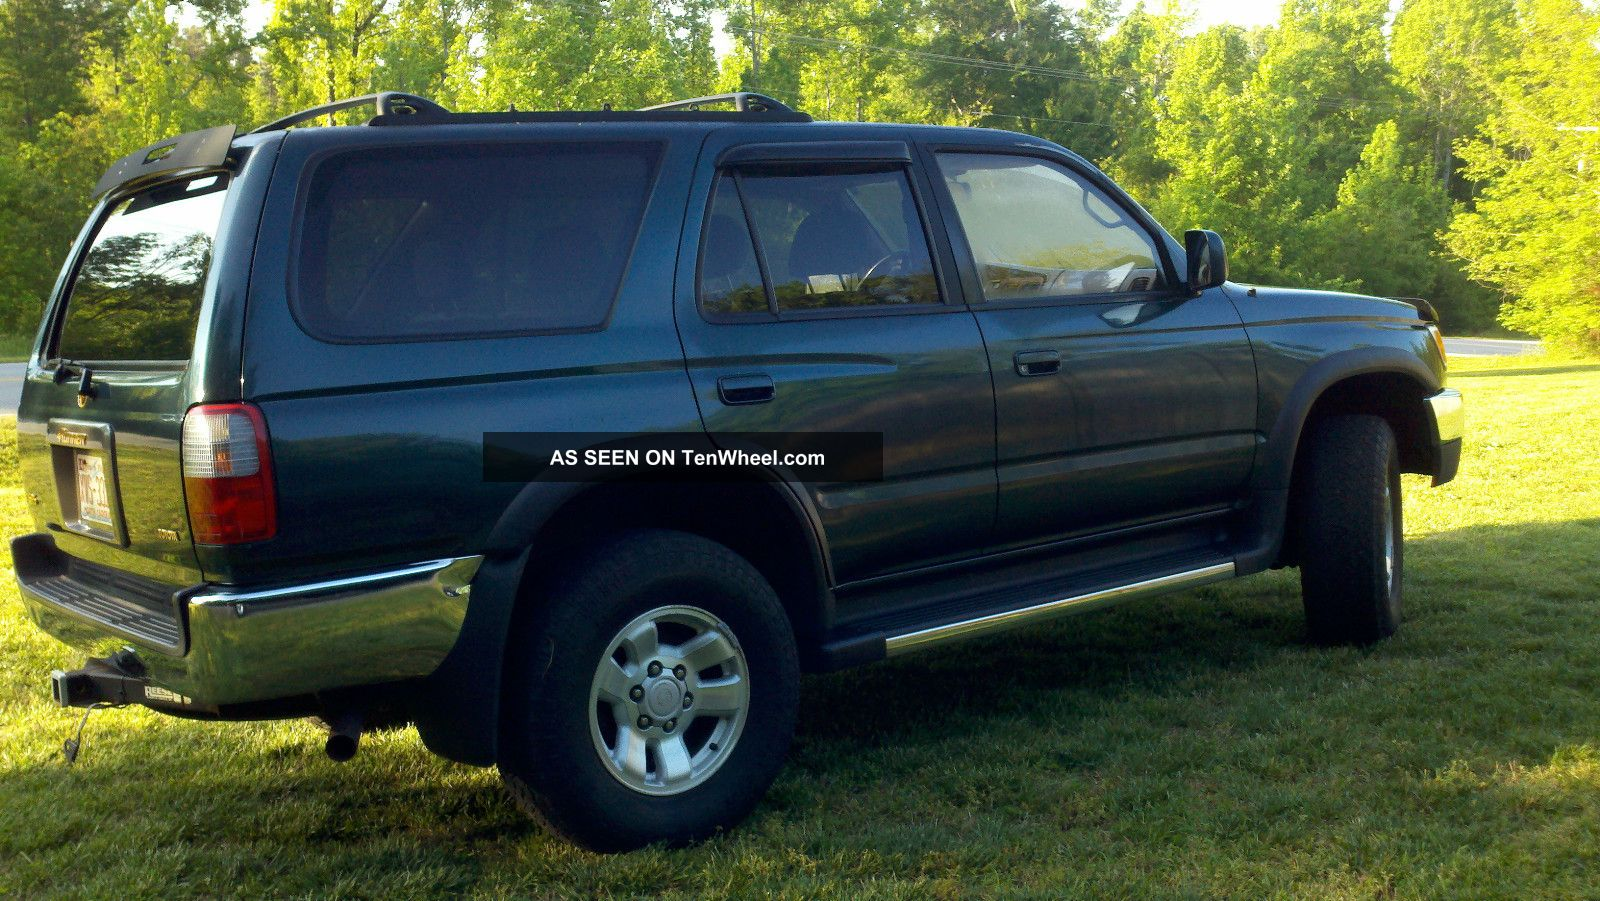 1997 Toyota 4 Runner Green - Tow Package - Roof Rack - Sun Roof 4Runner photo